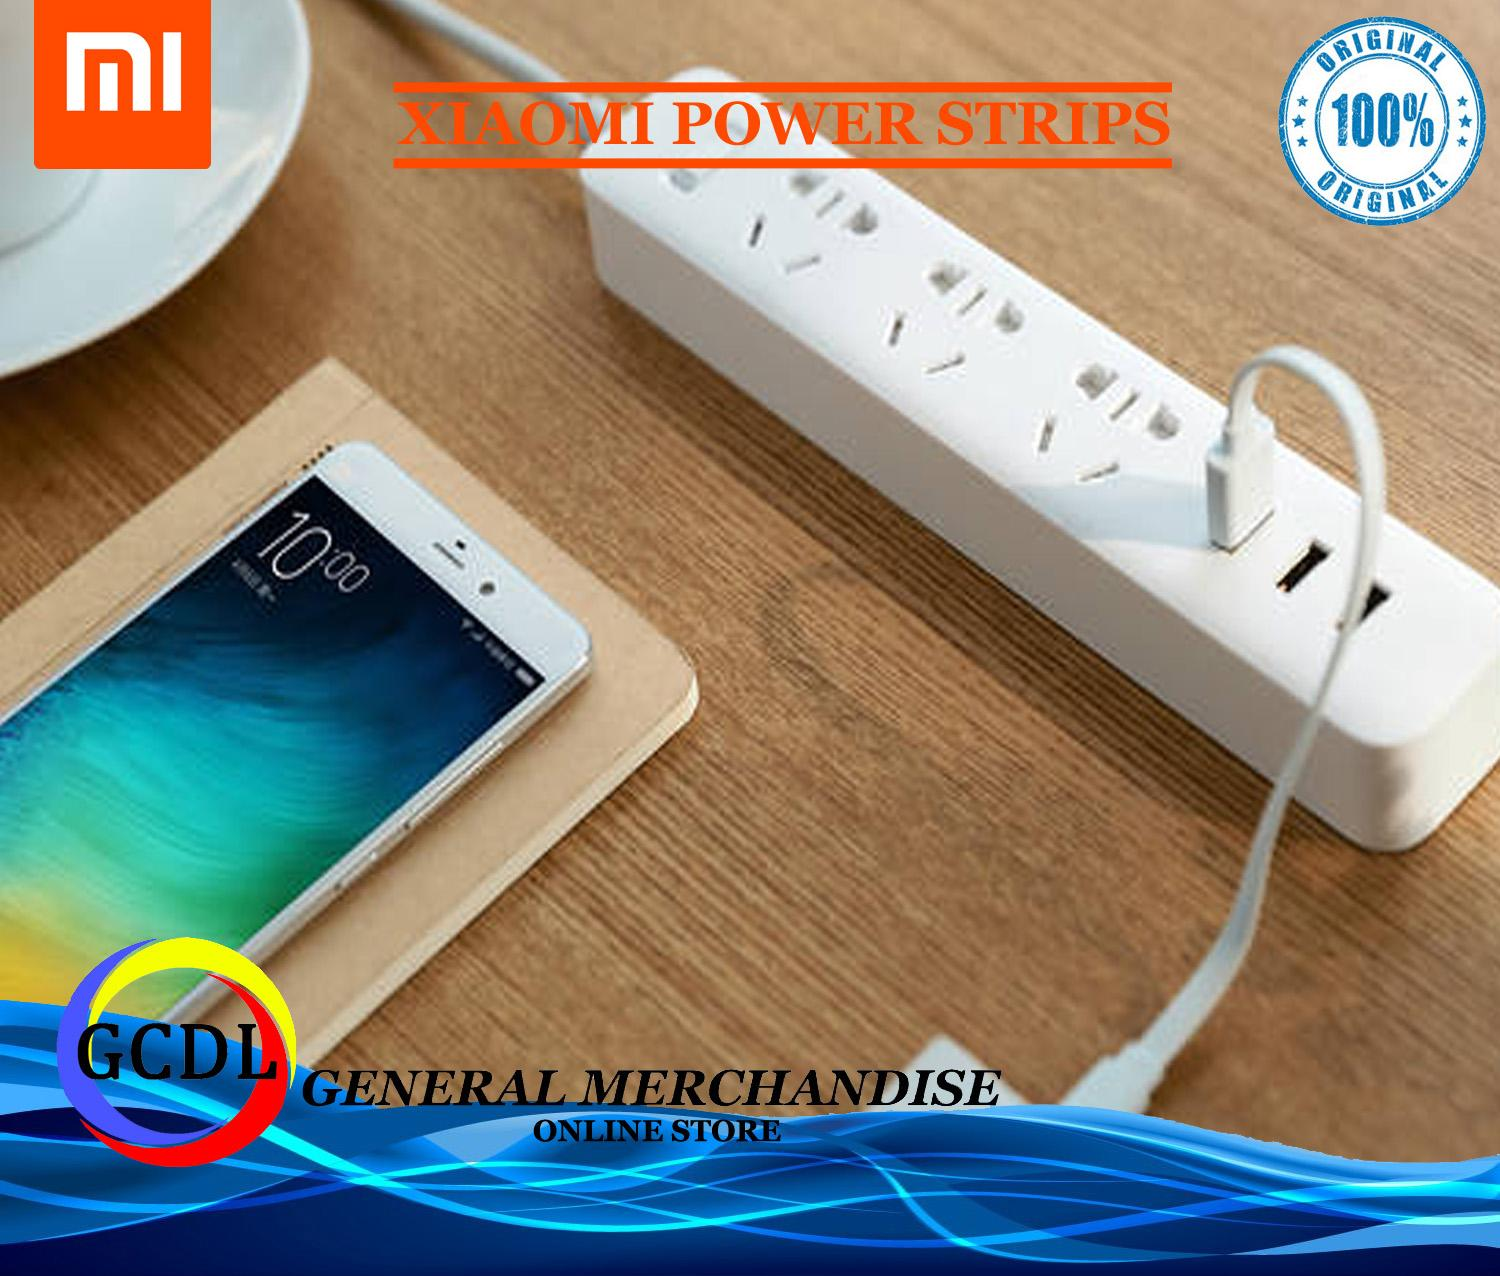 Buy Sell Cheapest Xiaomi 3 Usb Best Quality Product Deals Mi Smart Power Strip Plug Adapter With Port 2a Gcdl Adaptation Fast Charging Xiao Extension Socket